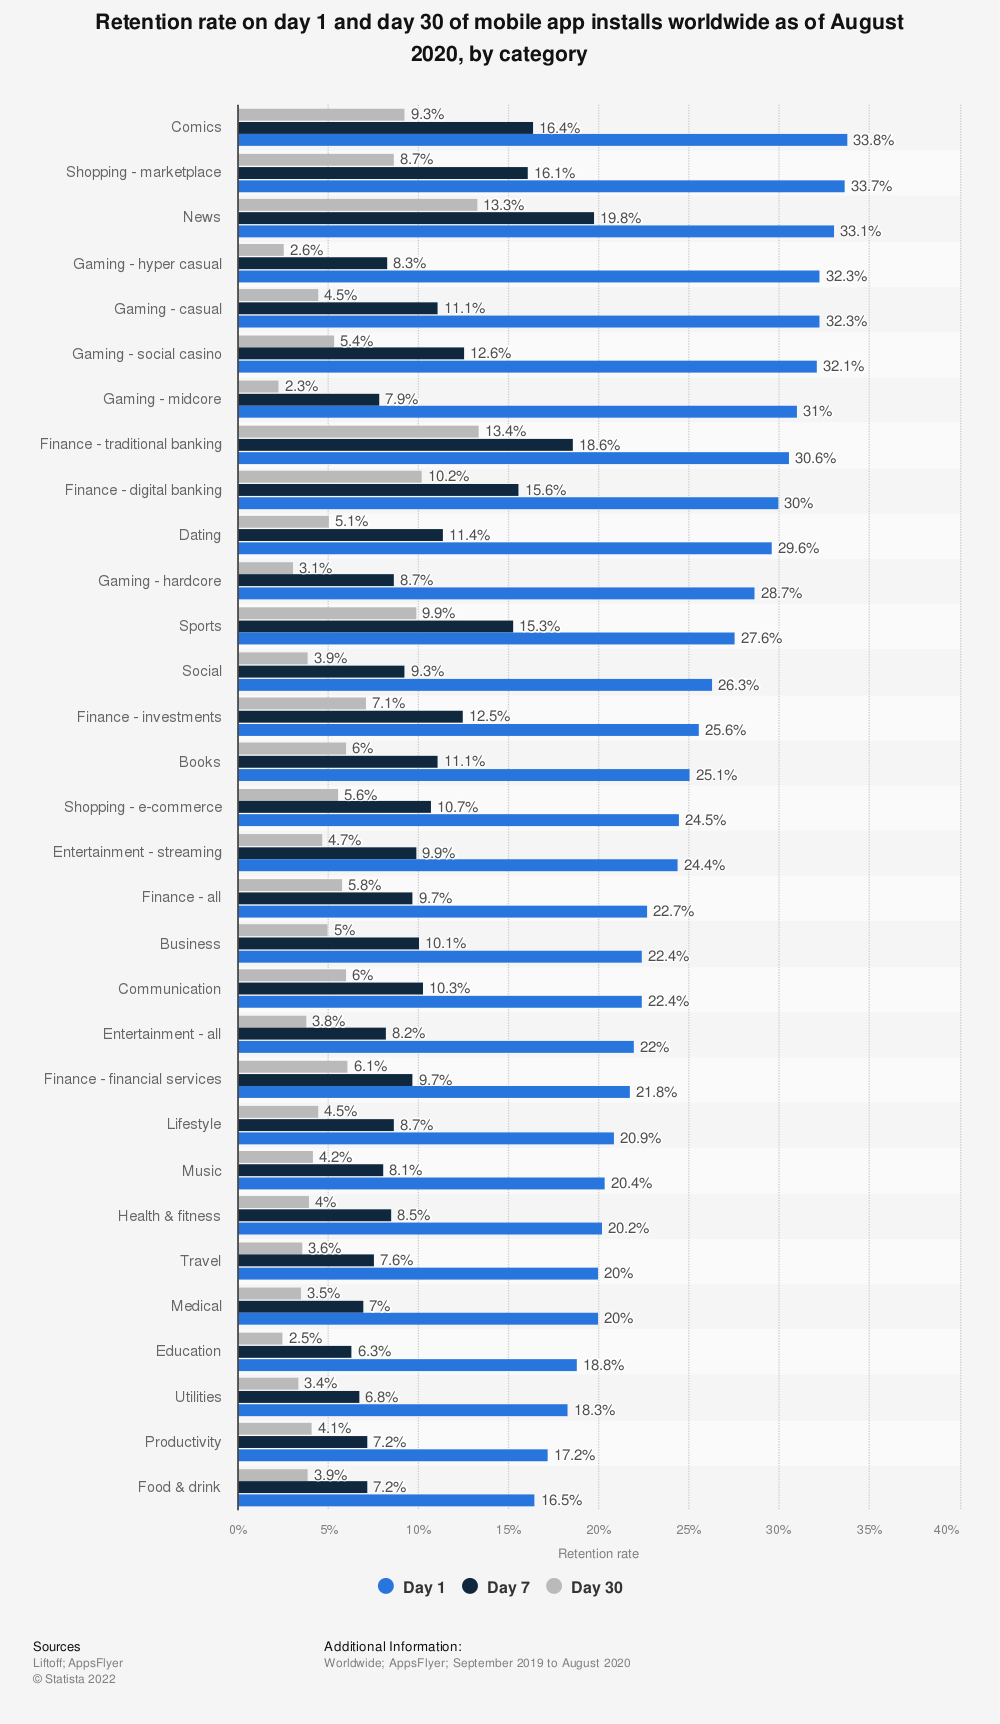 Statistic: Retention rate on day 1 and day 30 of mobile app installs worldwide as of August 2020, by category | Statista